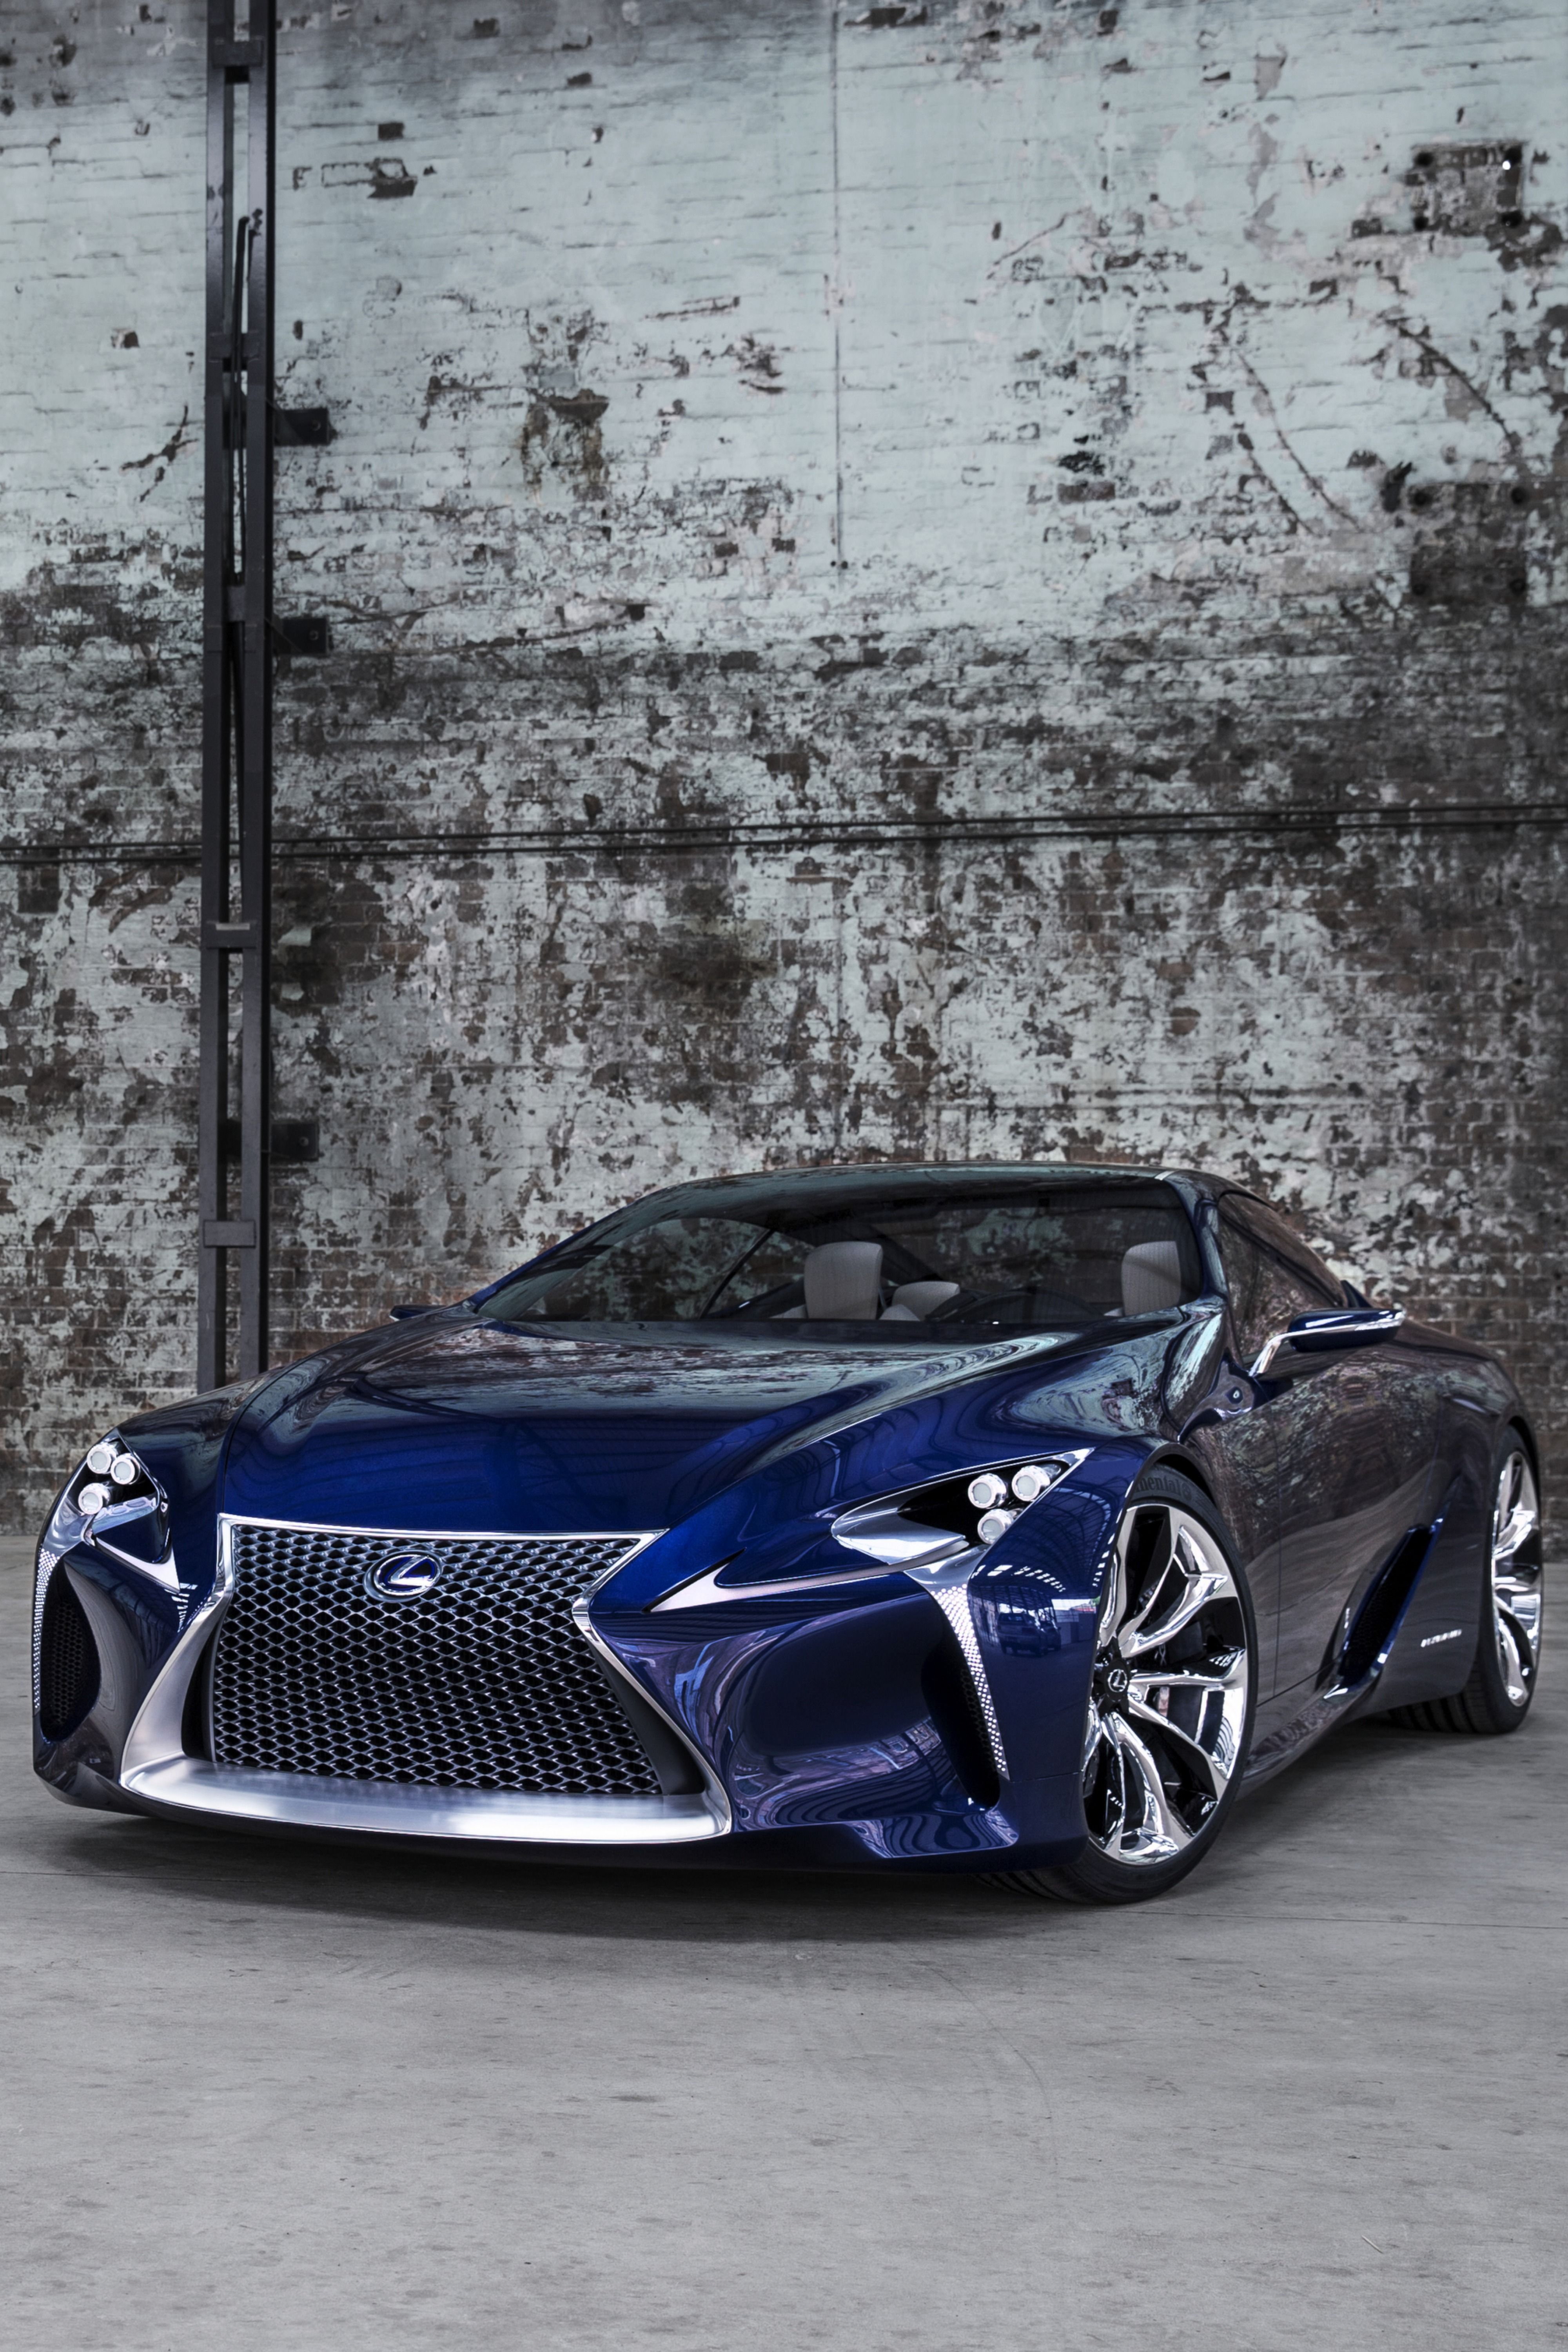 The Lexus LFLC concept car, a development of the award